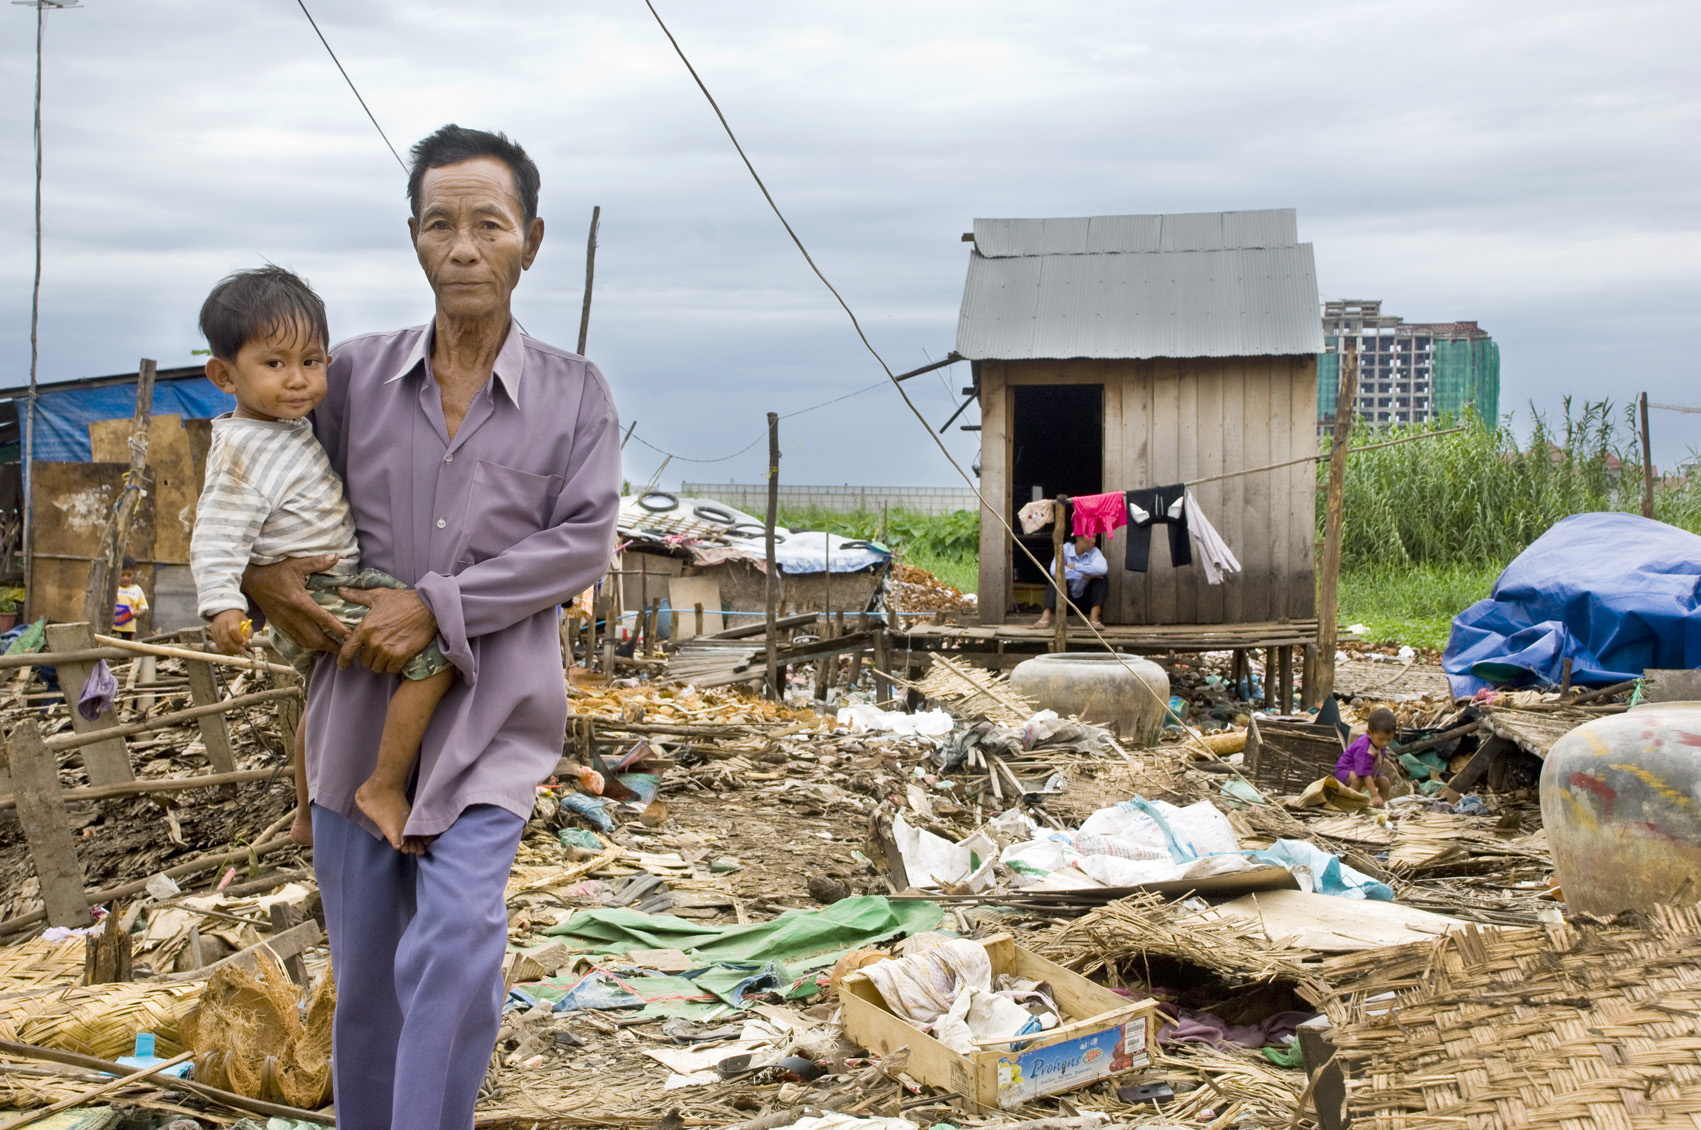 A man holds his child as he walks through the remains of a community known as Group 78 in central Phnom Penh on 16 July, 2009, a day before their forced eviction. Residents claimed they have been at location since 1983, giving them land rights, but govern